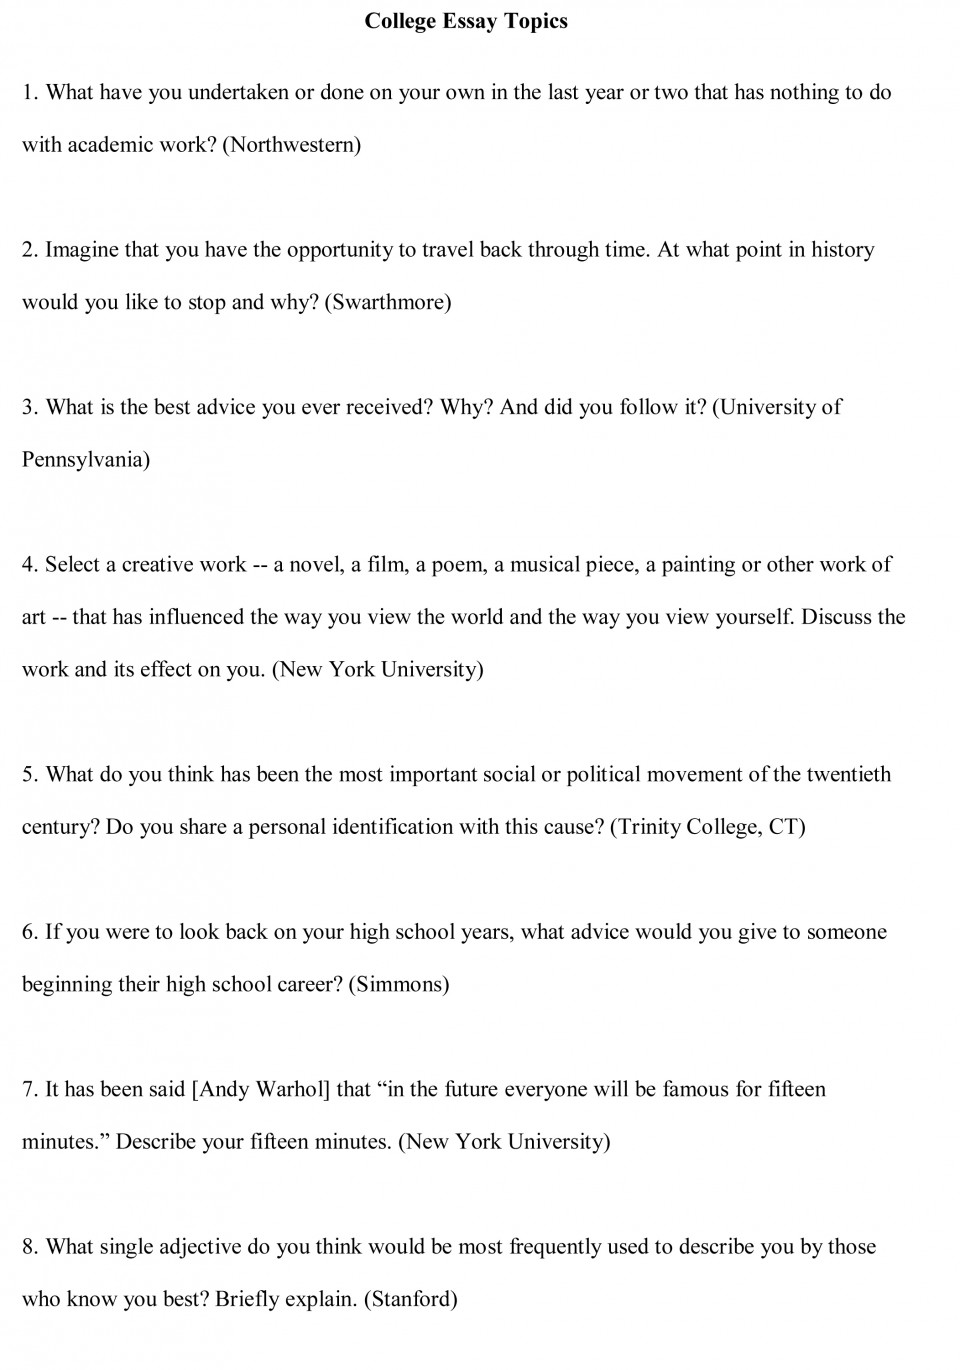 019 College Essay Topics Free Sample1 Example High School Dreaded Experience 960